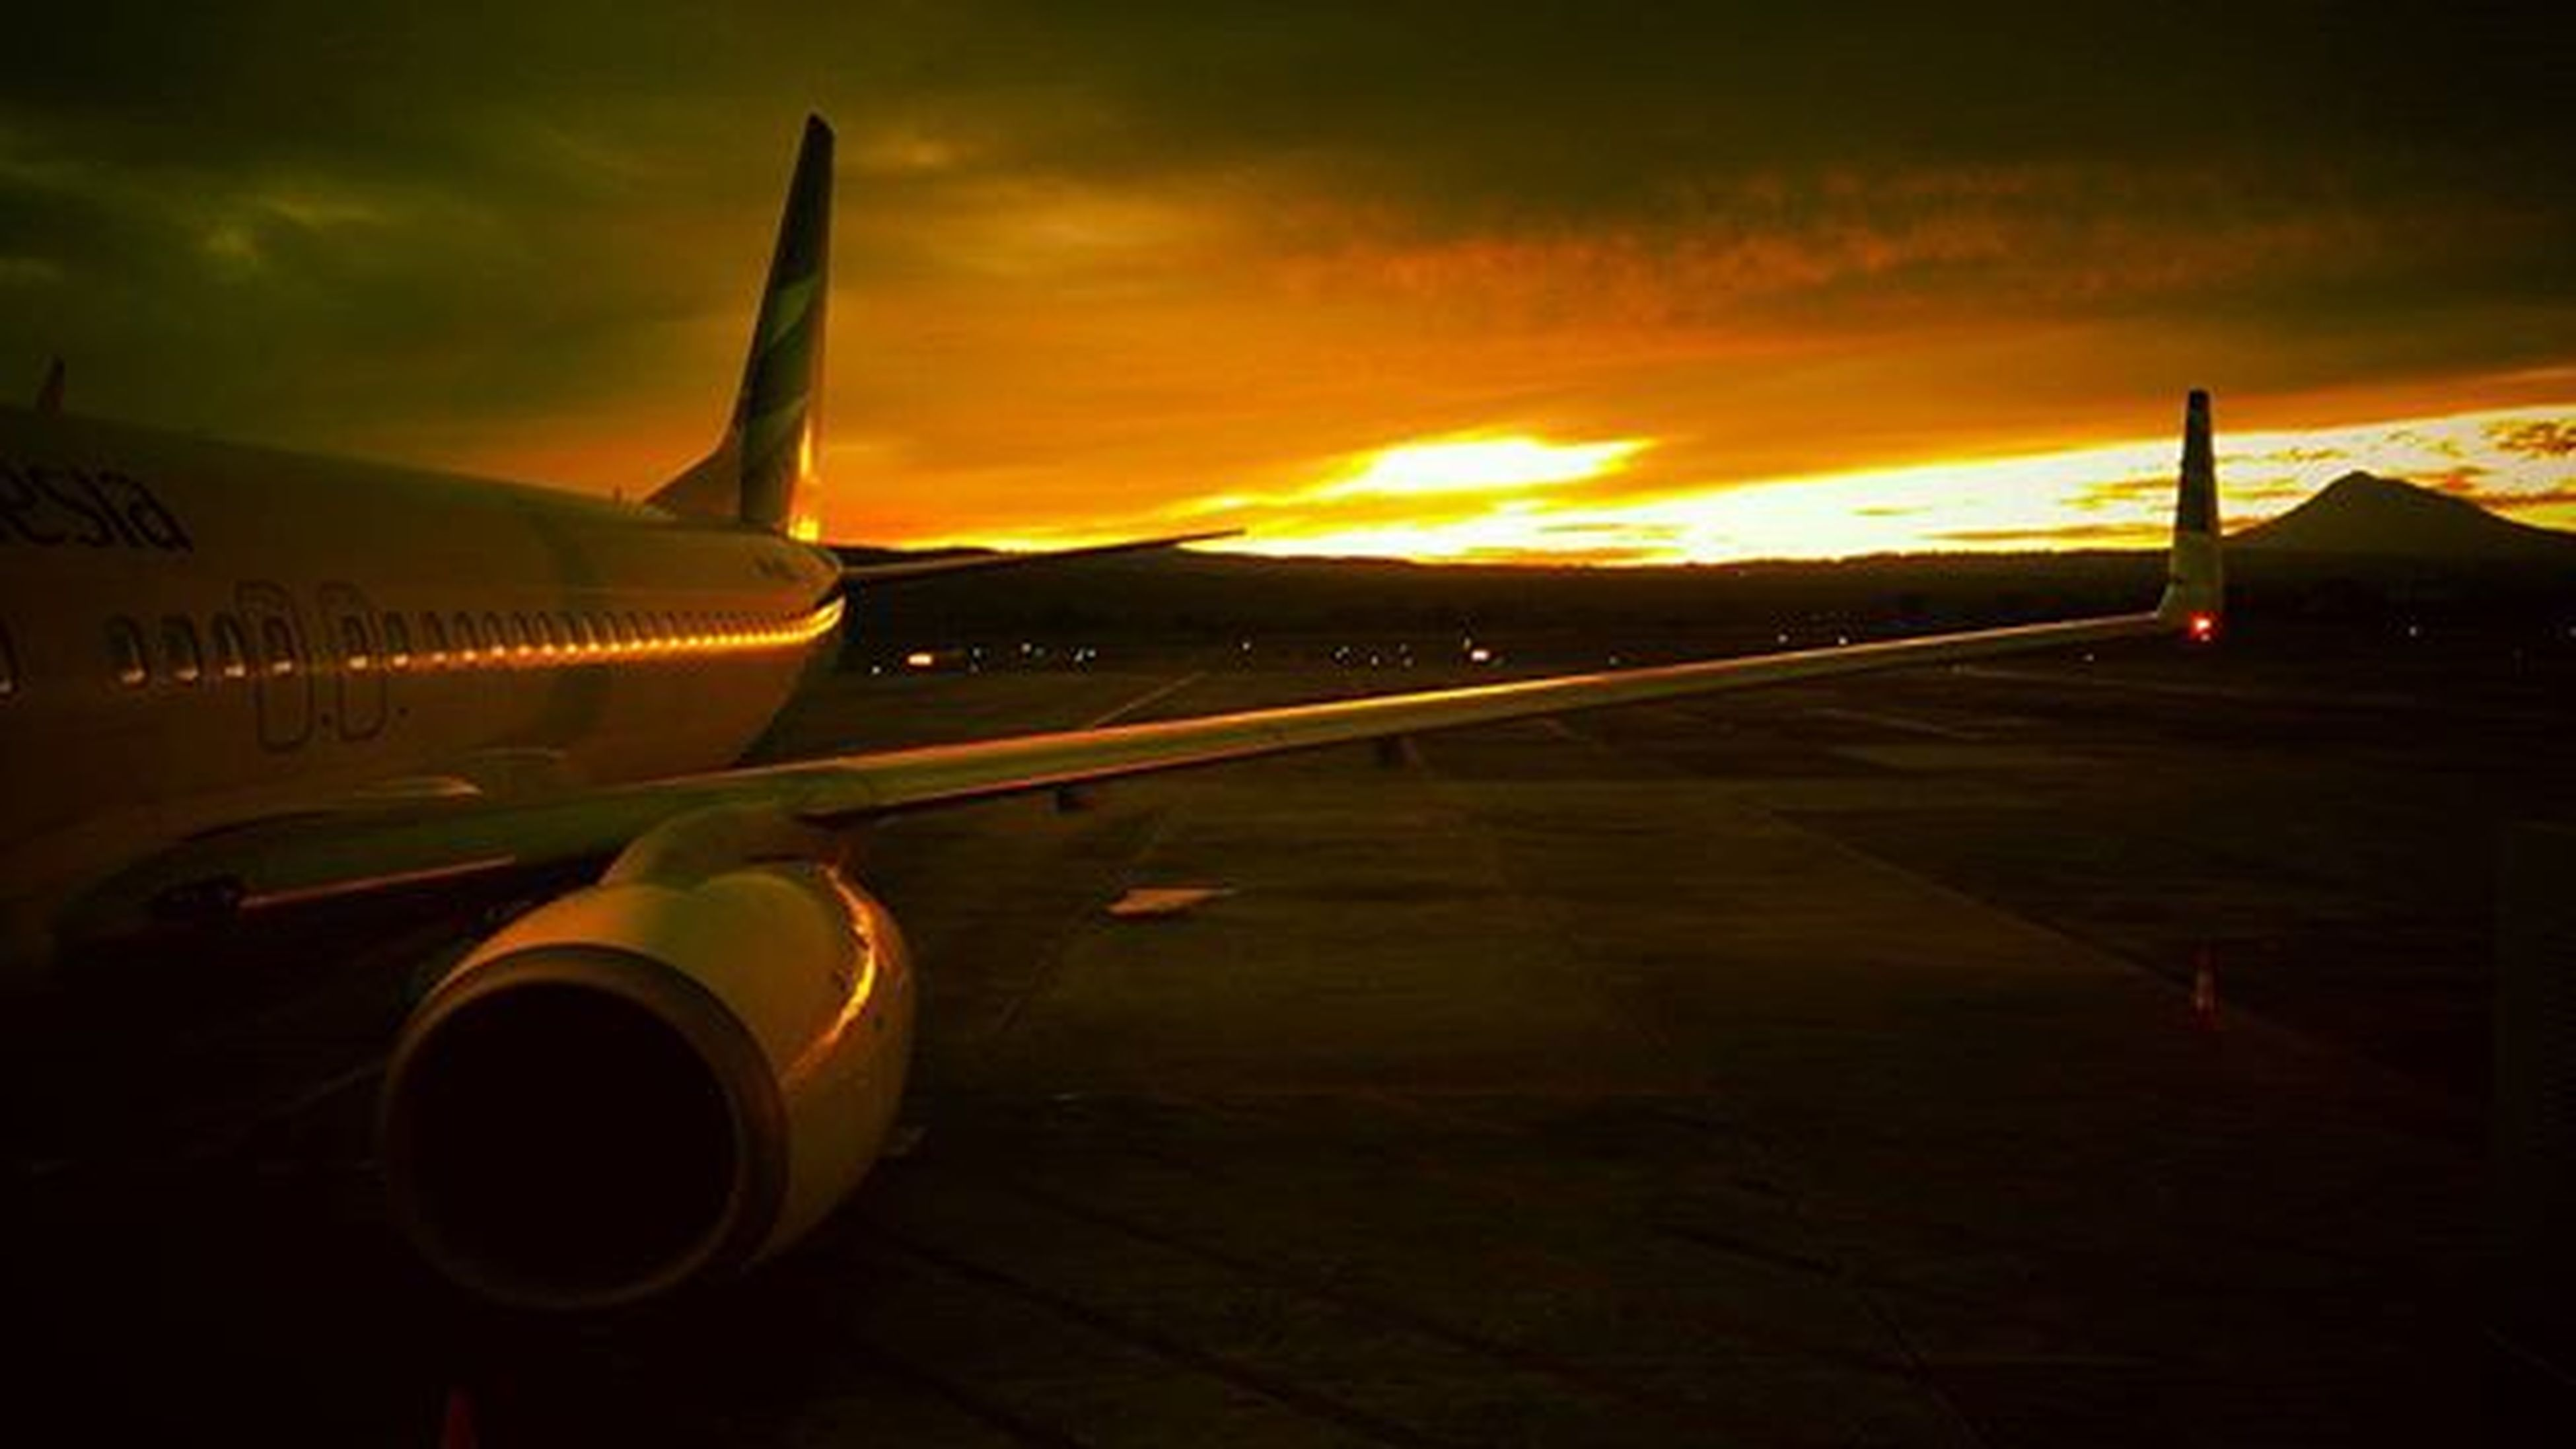 sunset, orange color, transportation, sky, mode of transport, cloud - sky, sunlight, no people, sun, outdoors, airplane, nature, close-up, beauty in nature, yellow, air vehicle, metal, cloud, cropped, scenics